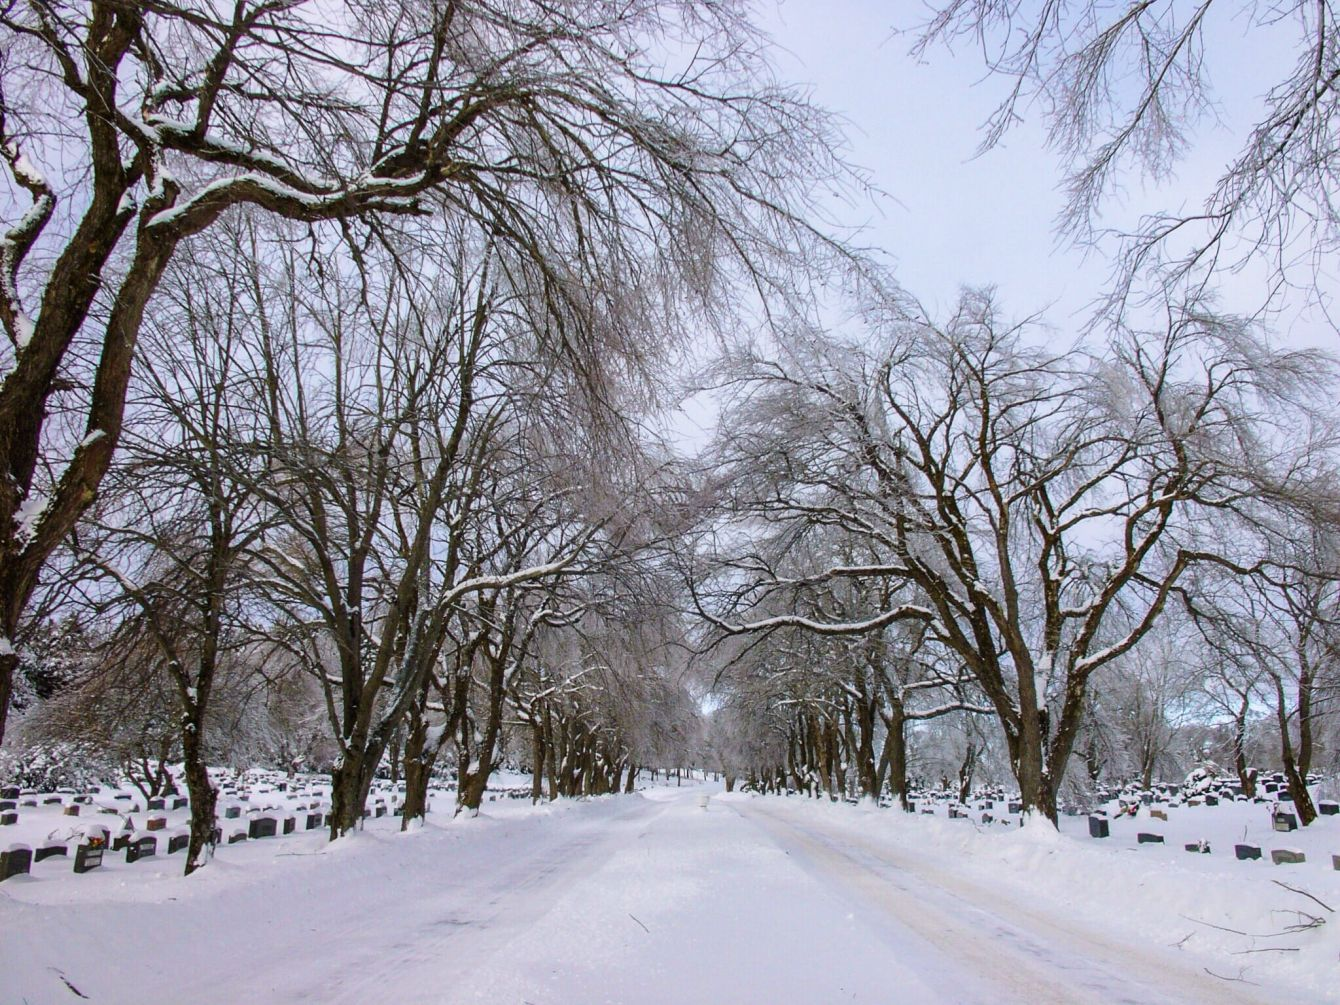 Click thumbnail to see details about photo - Winter Trees at Cemetery Saint John Photograph